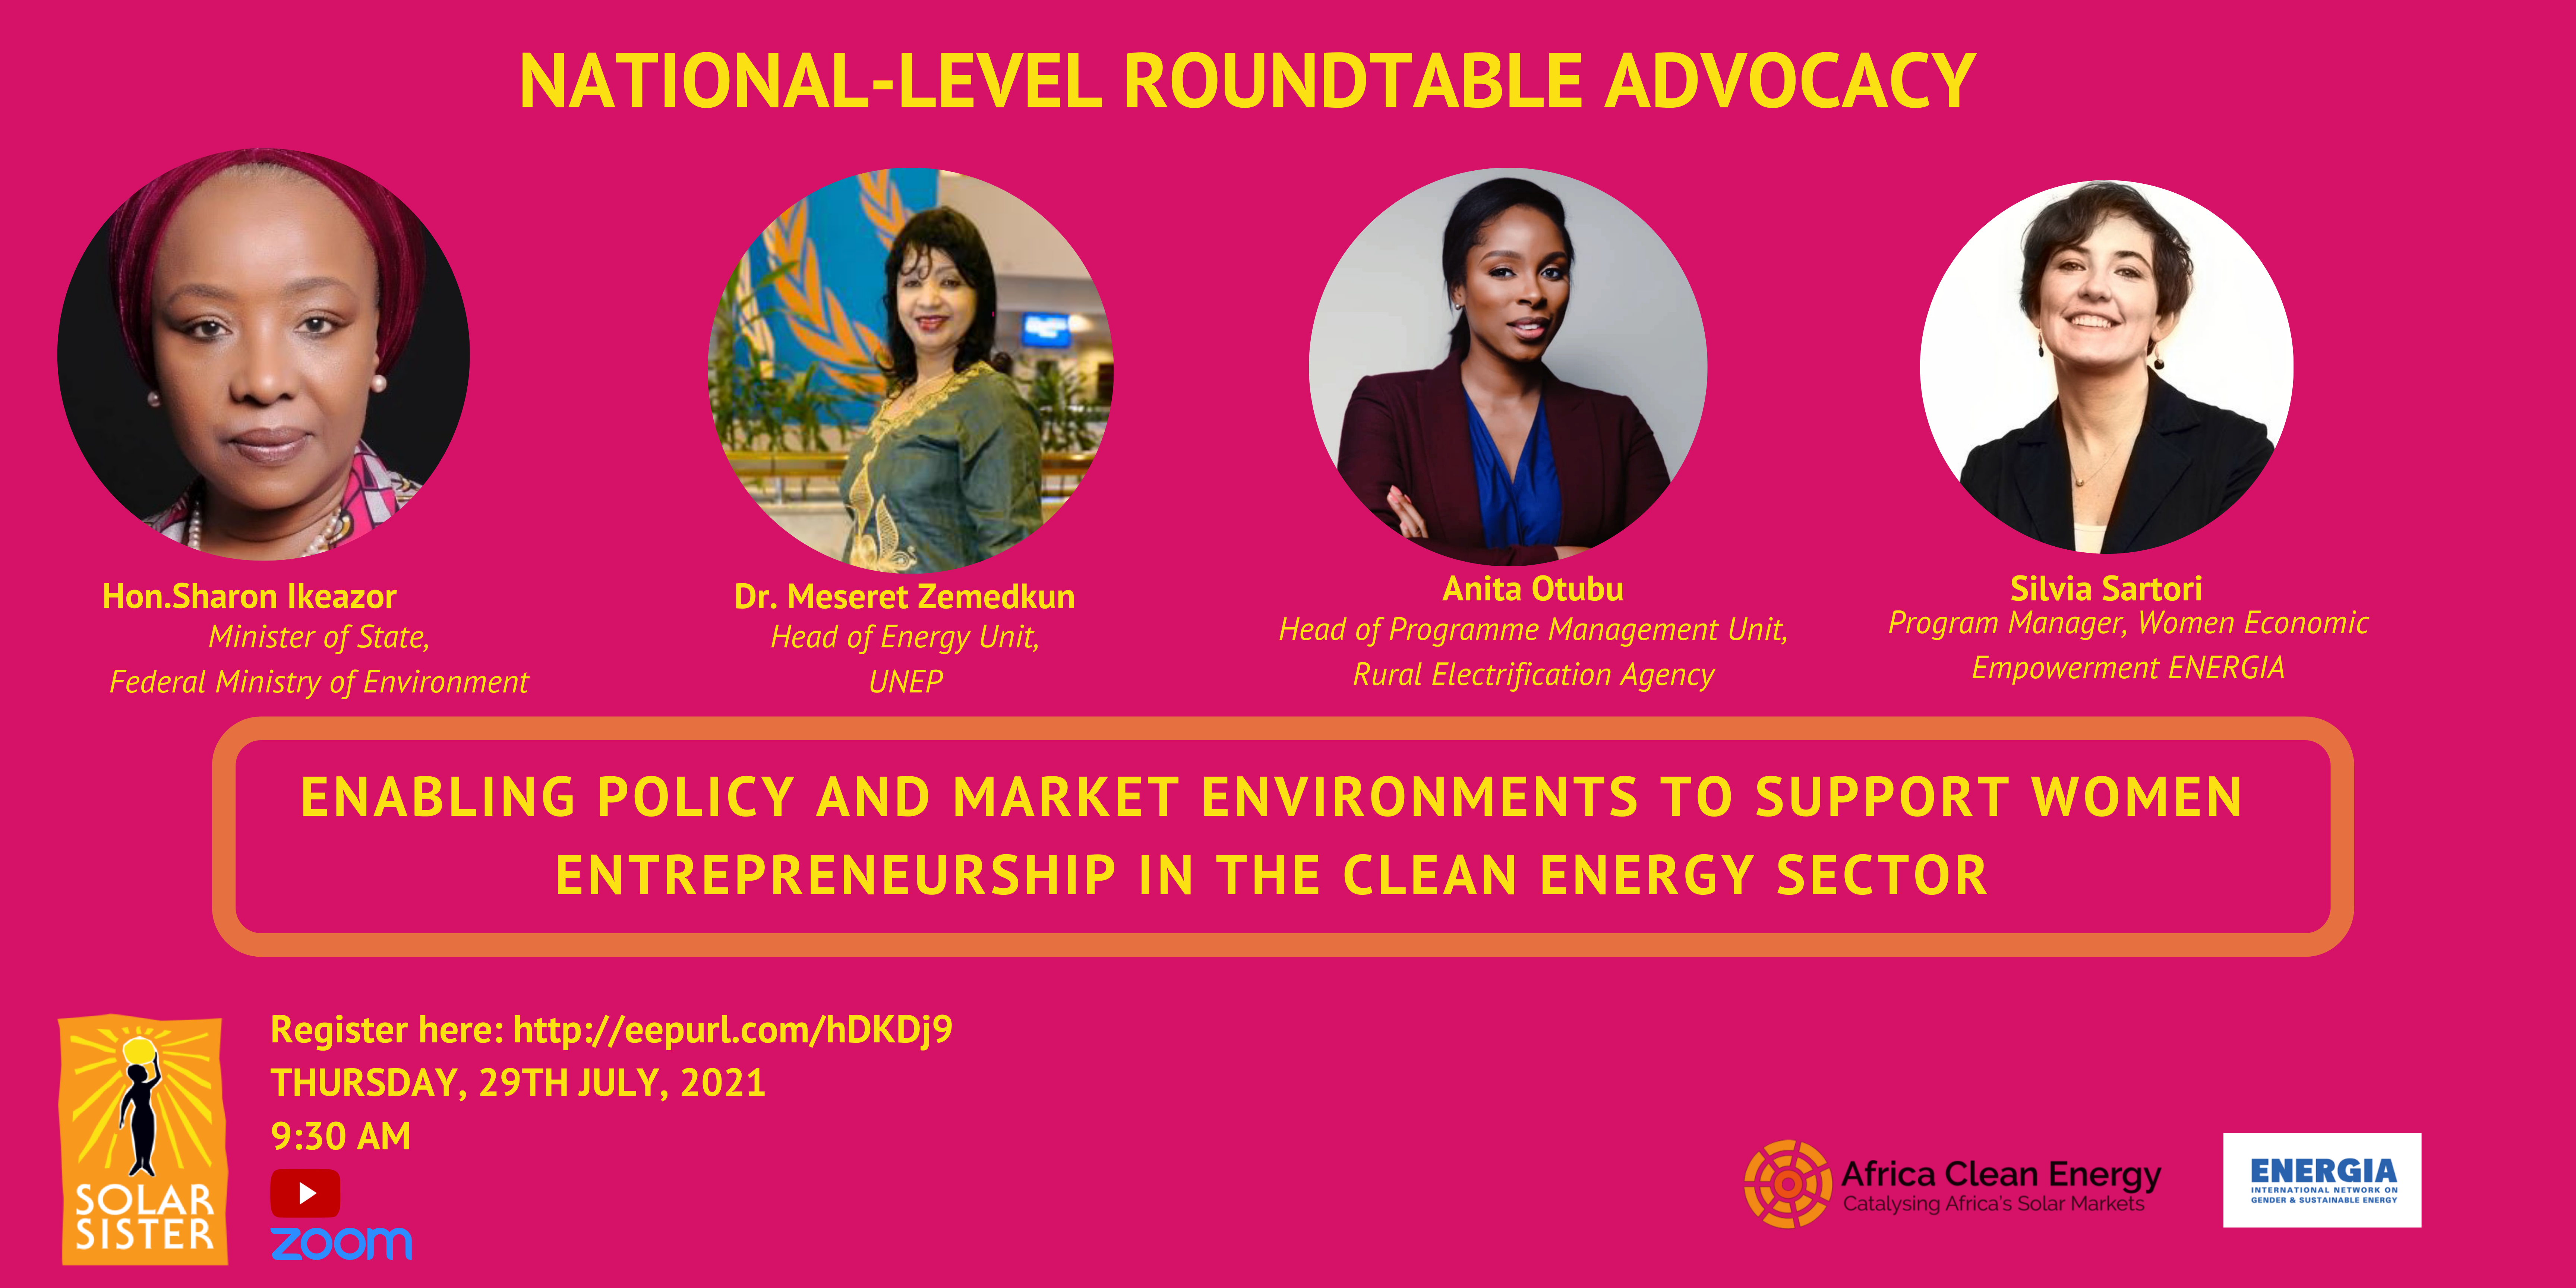 Event: Enabling policy and market environments to support women entrepreneurship in the clean energy sector